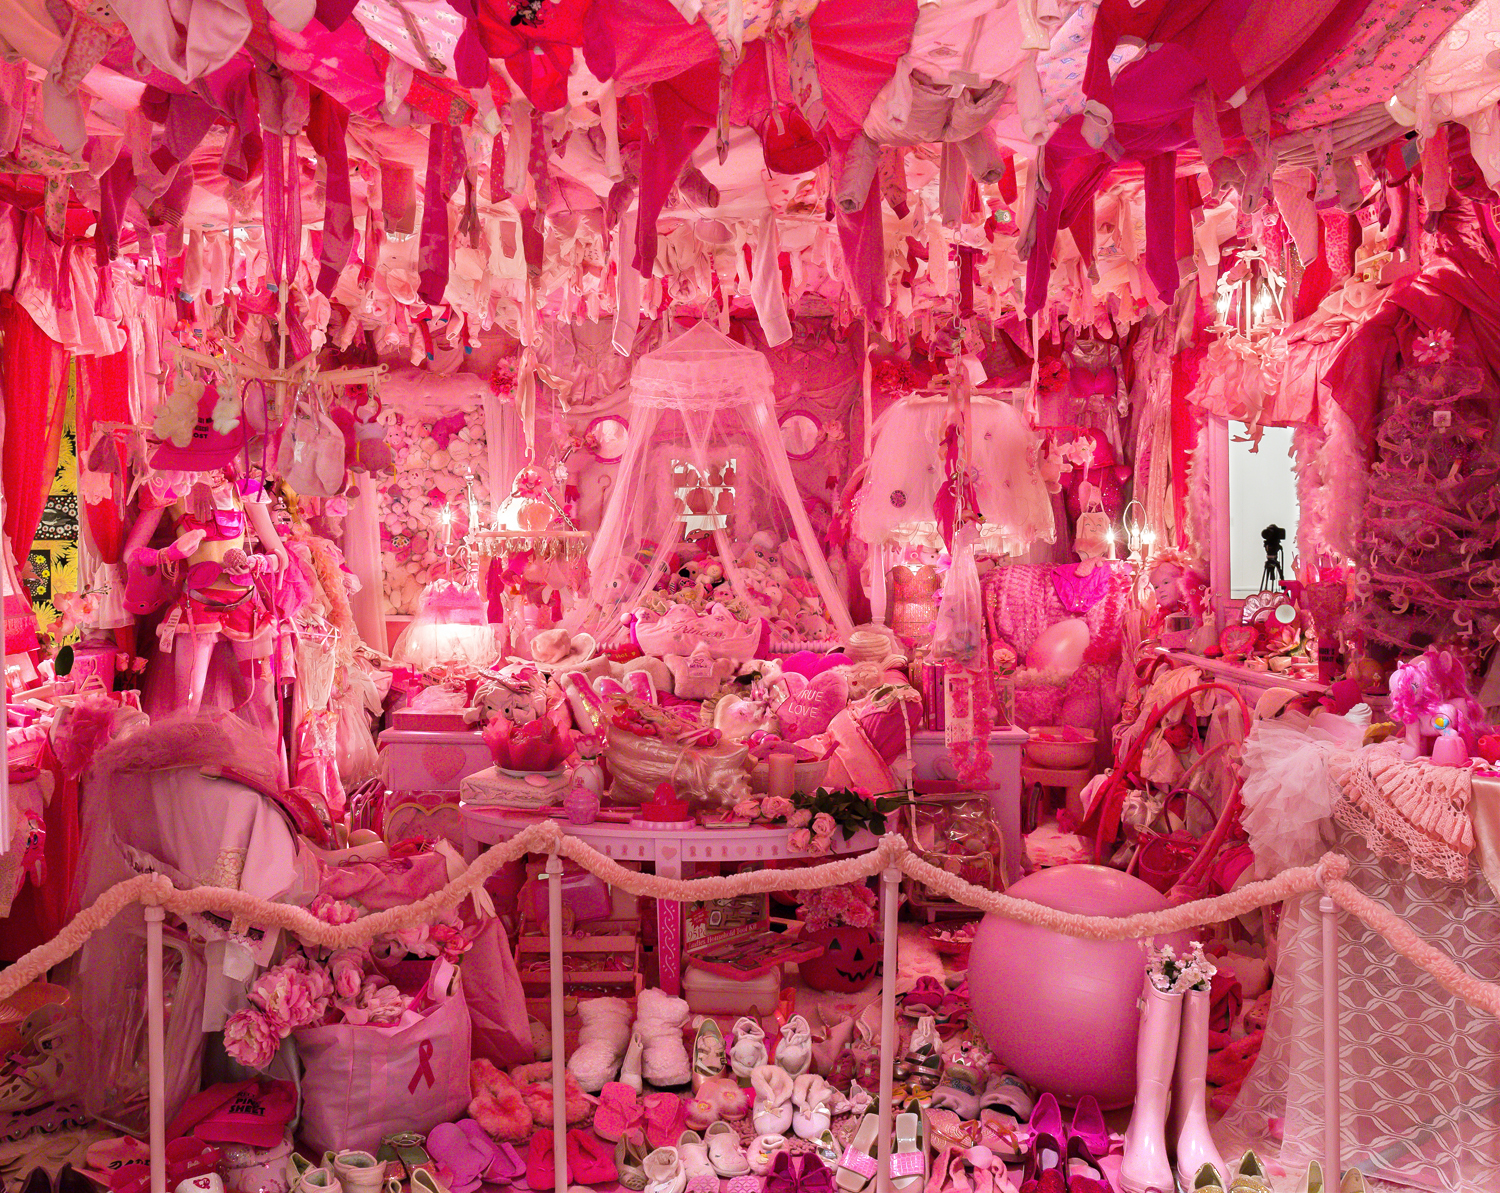 The Pink World of Portia Munson at Bedford Gallery - Broke Ass ...